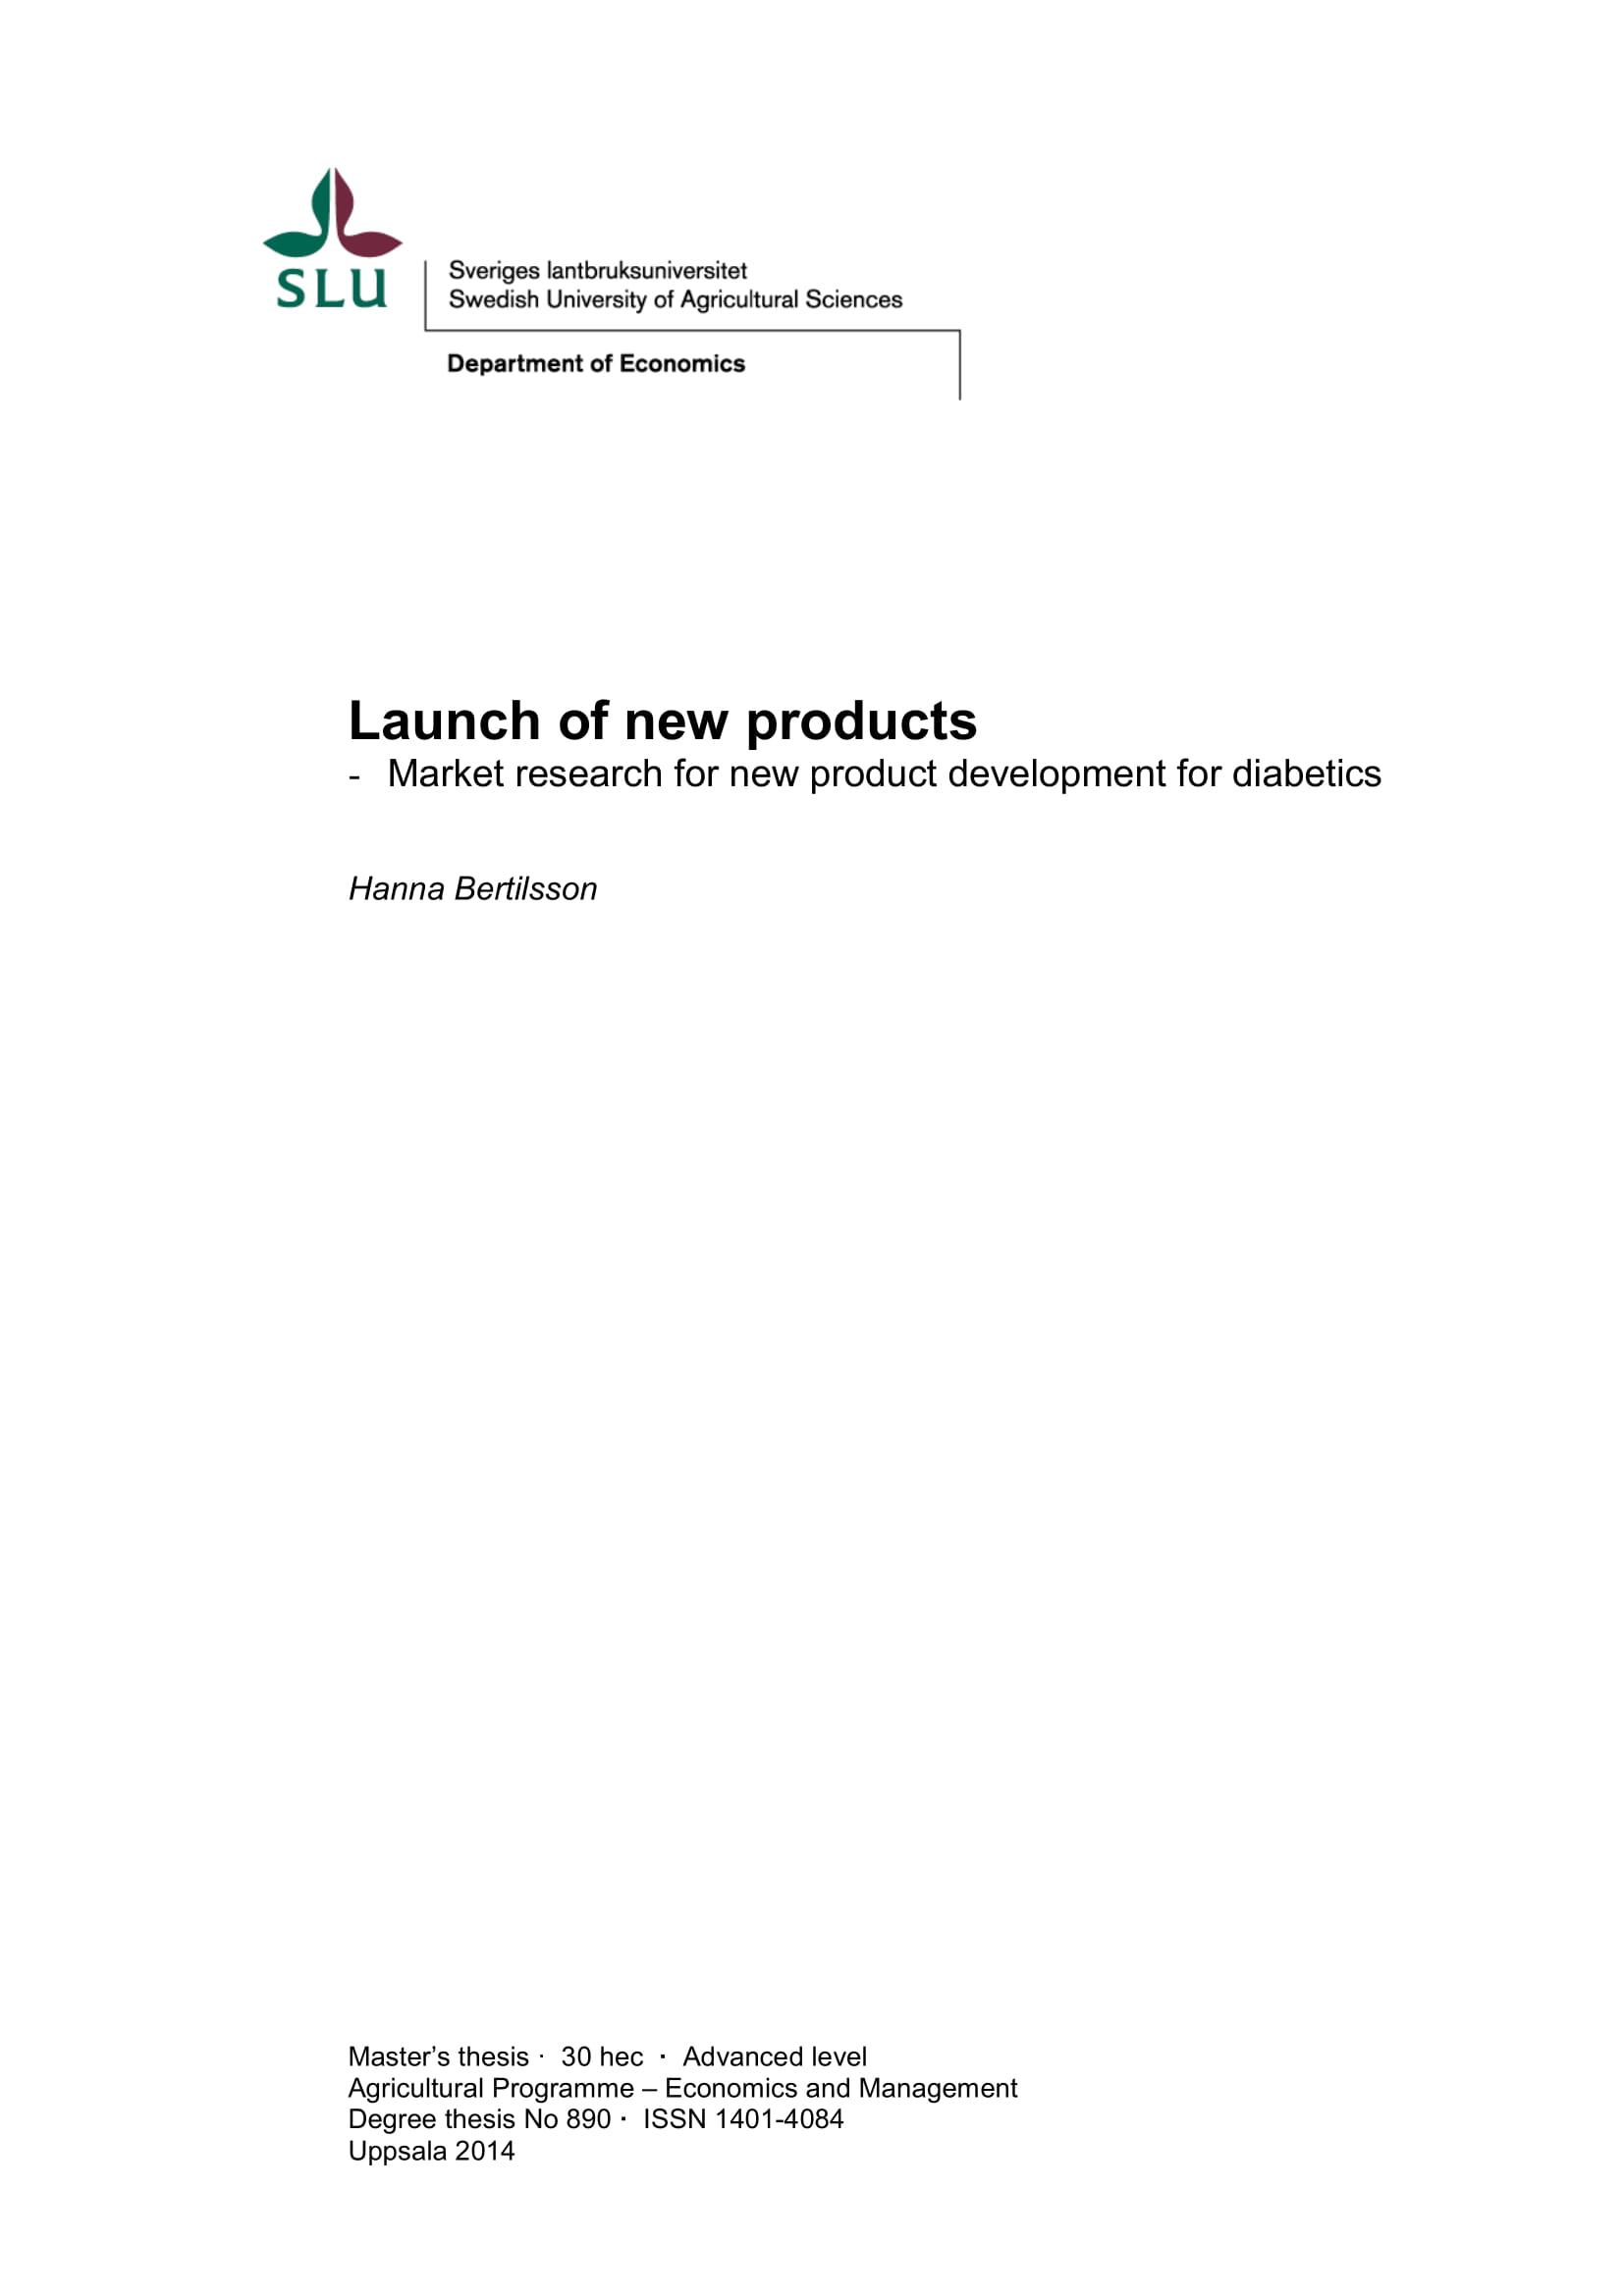 marketing planning and research for the launch of new products example 01